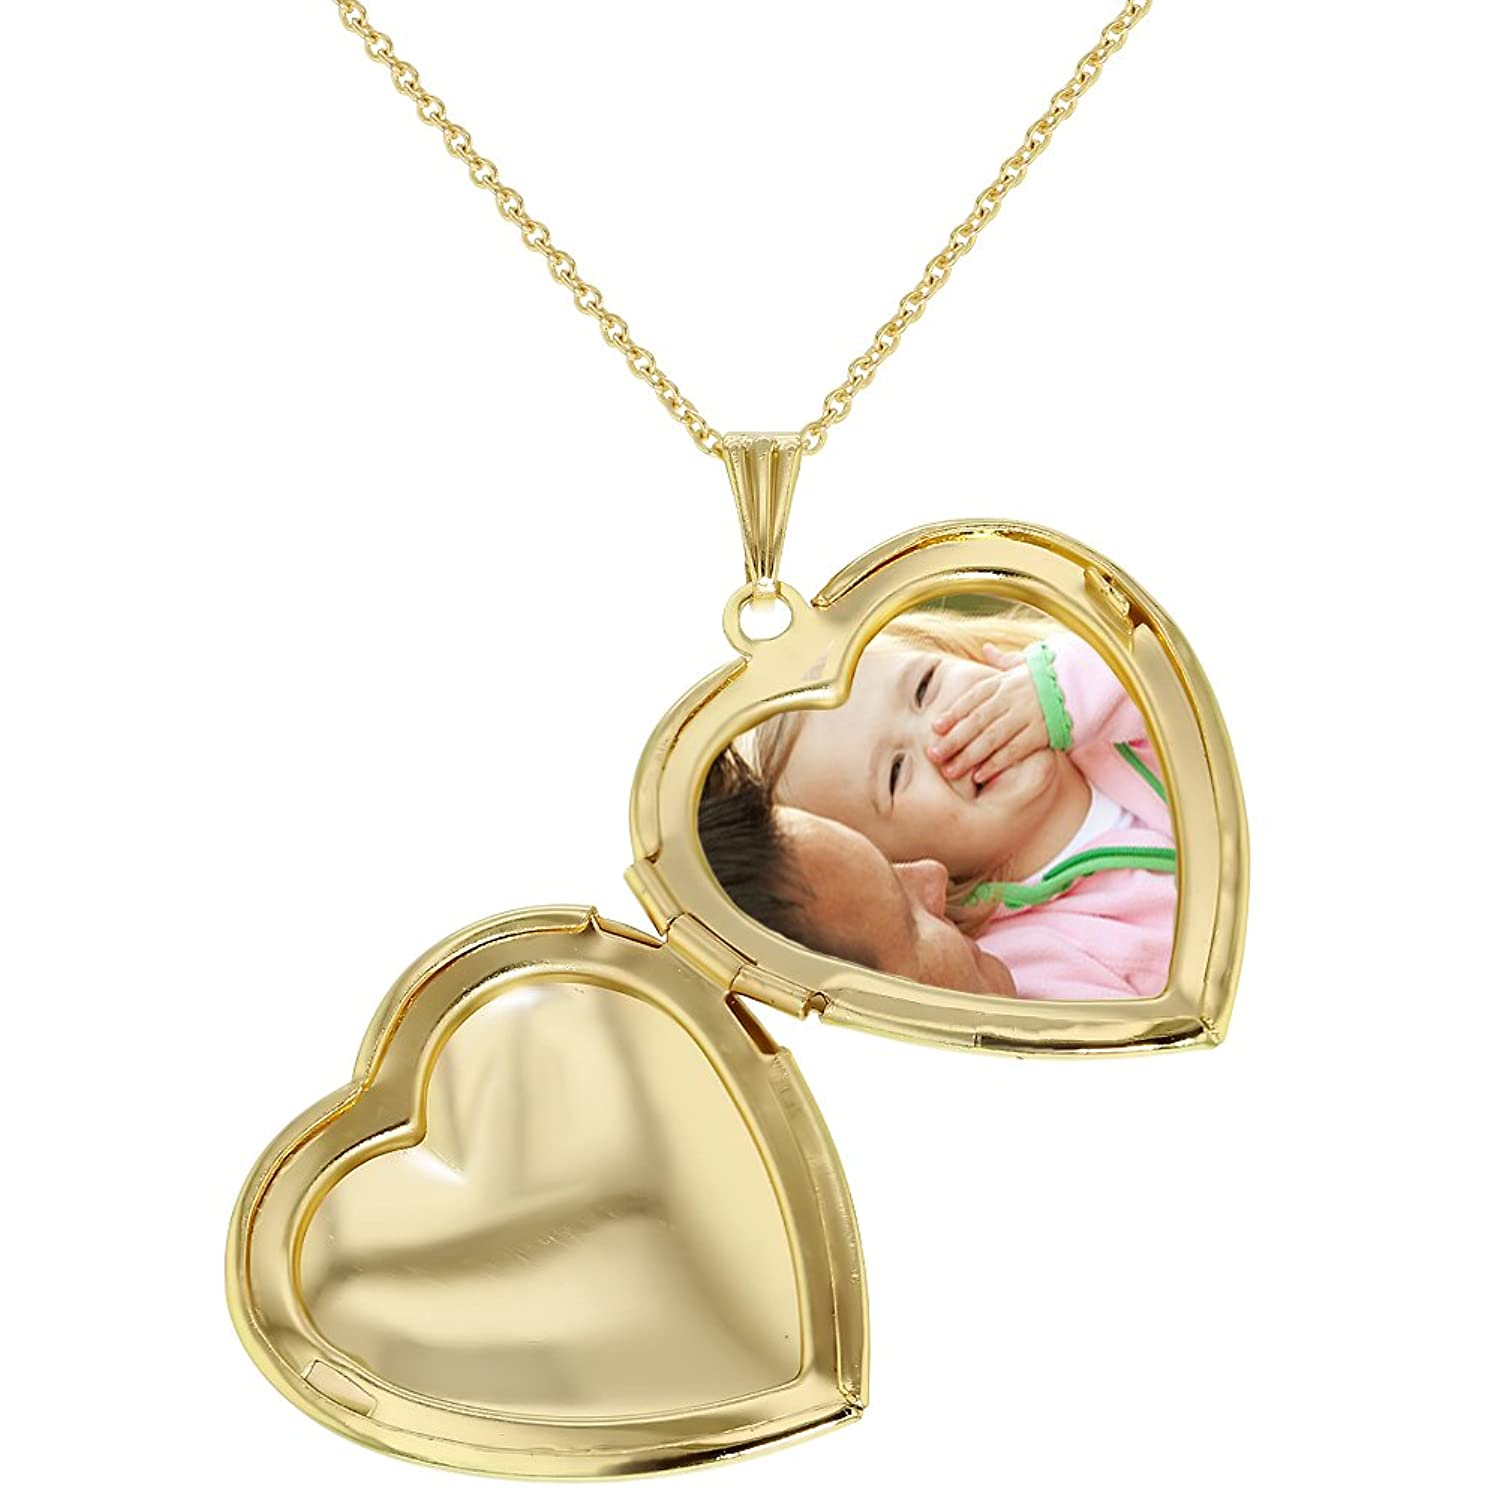 style necklaces jewellery locket diamond with girls heart category samuel h l chain set gold number product lockets pendants webstore